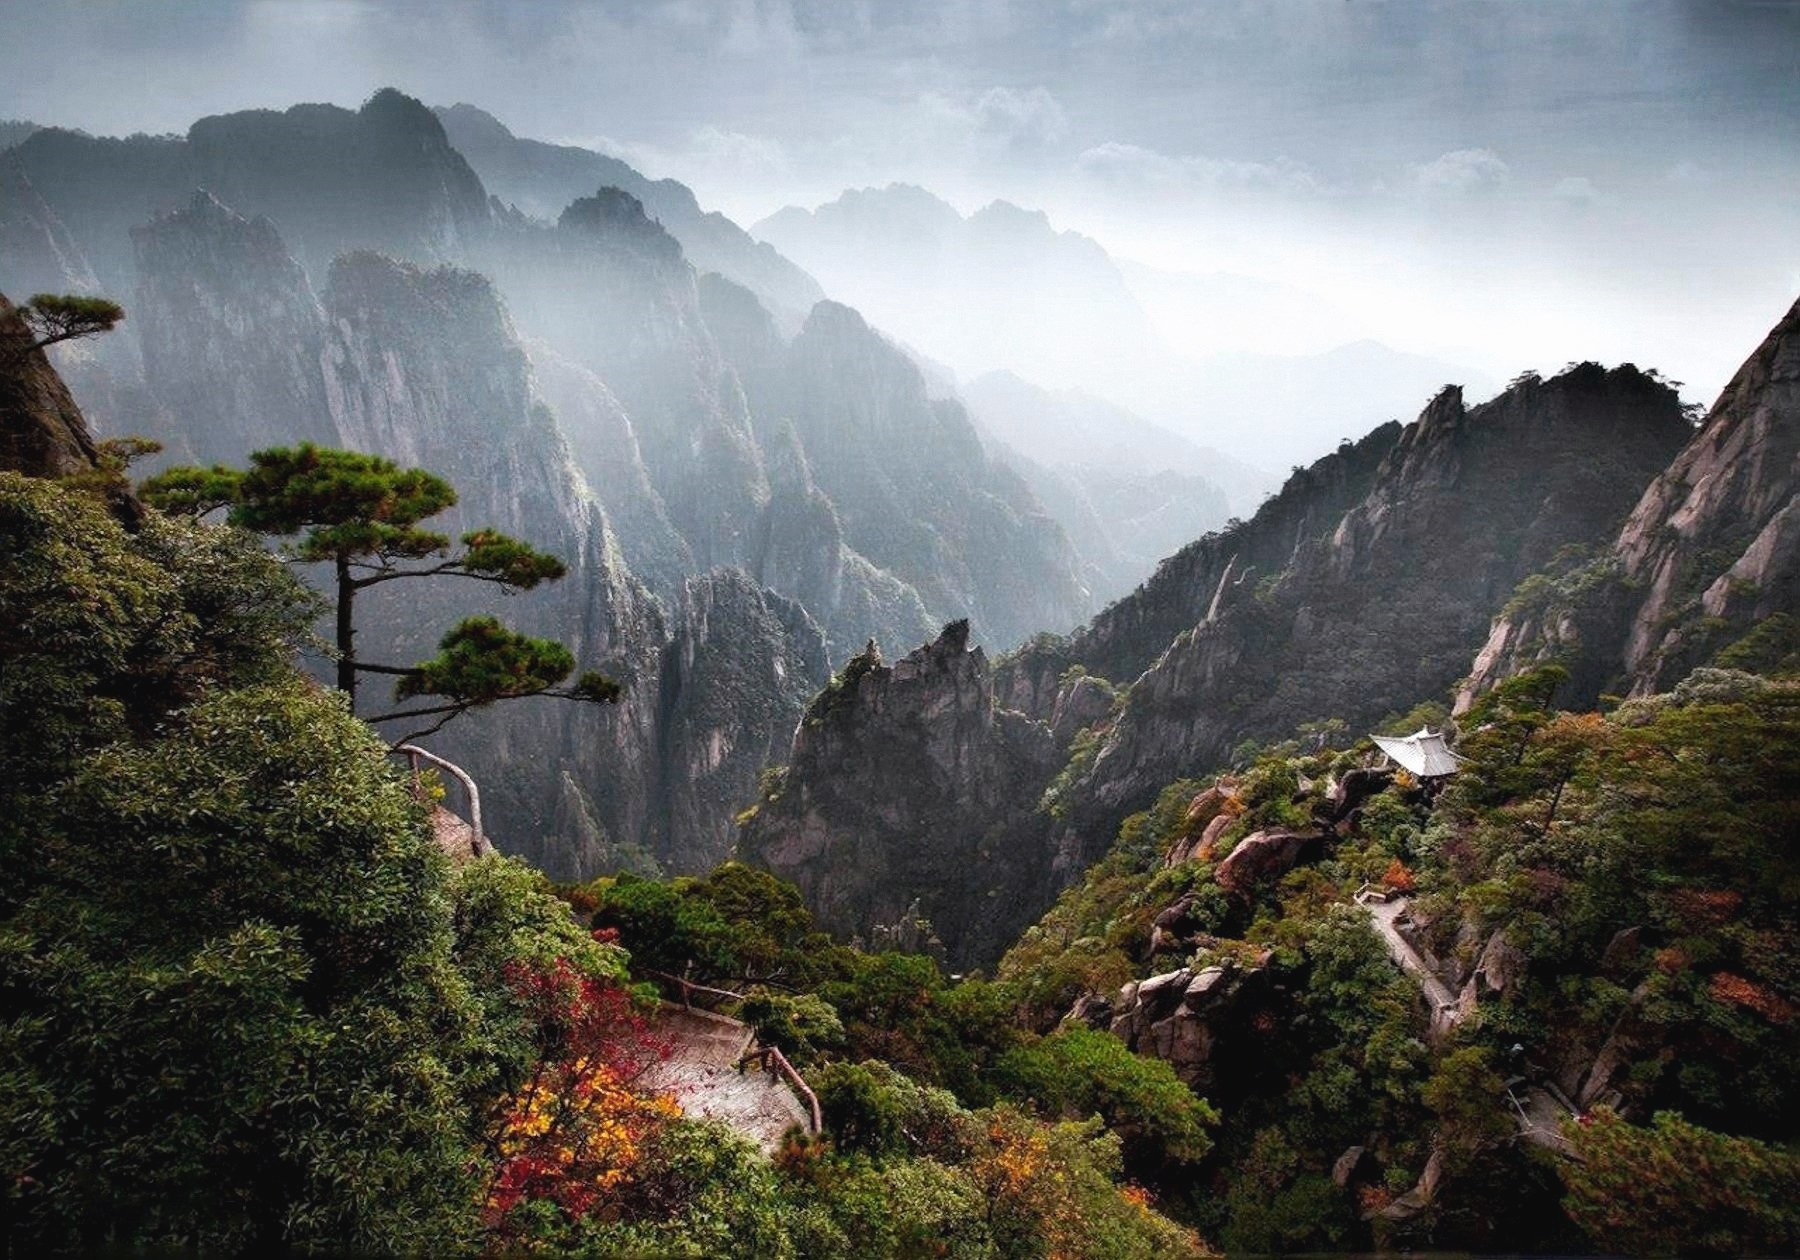 Huangshan China  city photos : ... Vorobyov. The Mountain Chain of Huangshan, China. 2015 | Art and Faith